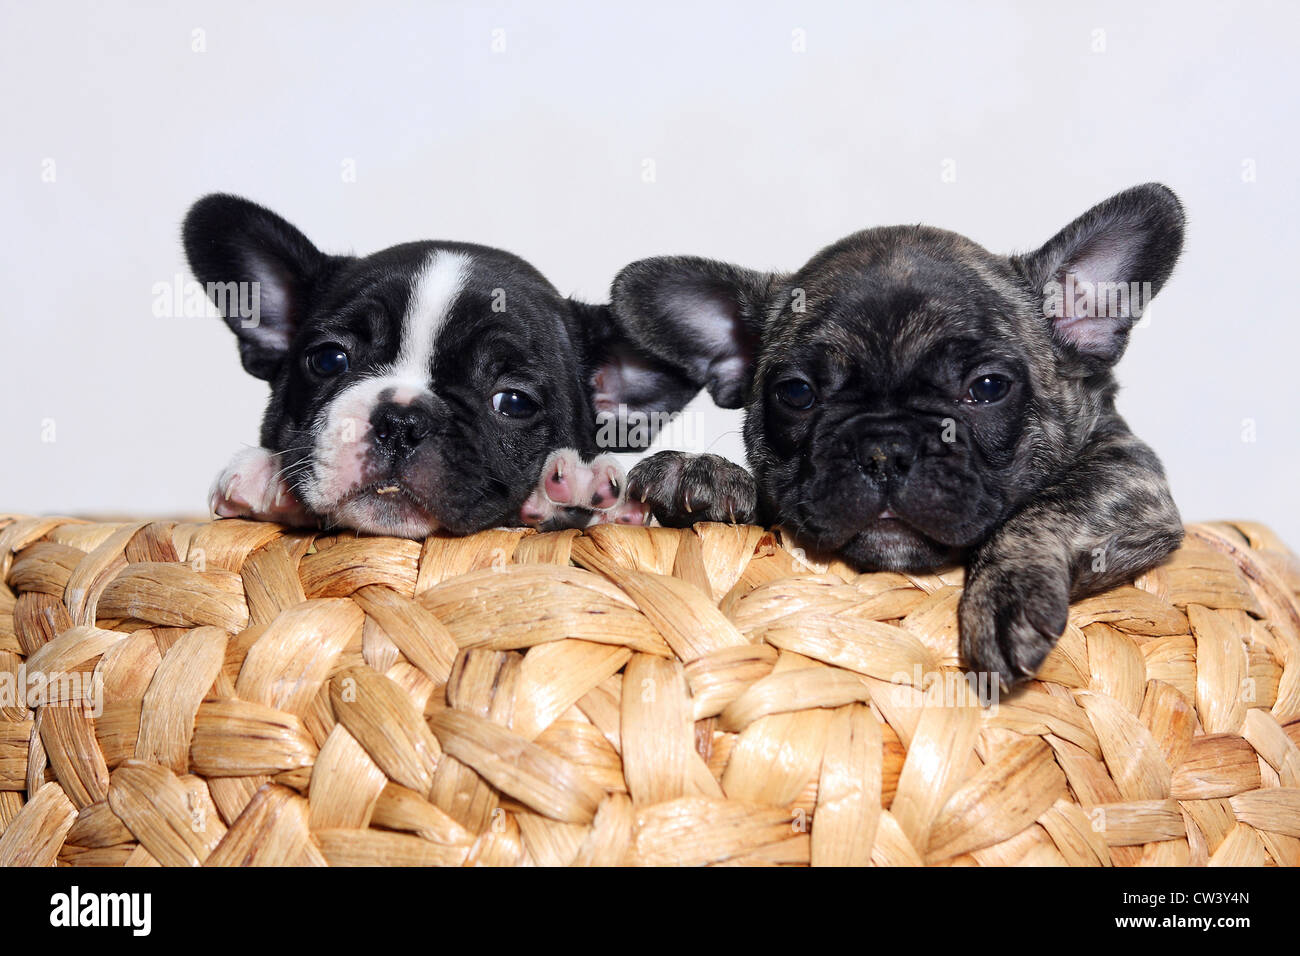 French Bulldog Canis Lupus Familiaris Black And White And Brindle